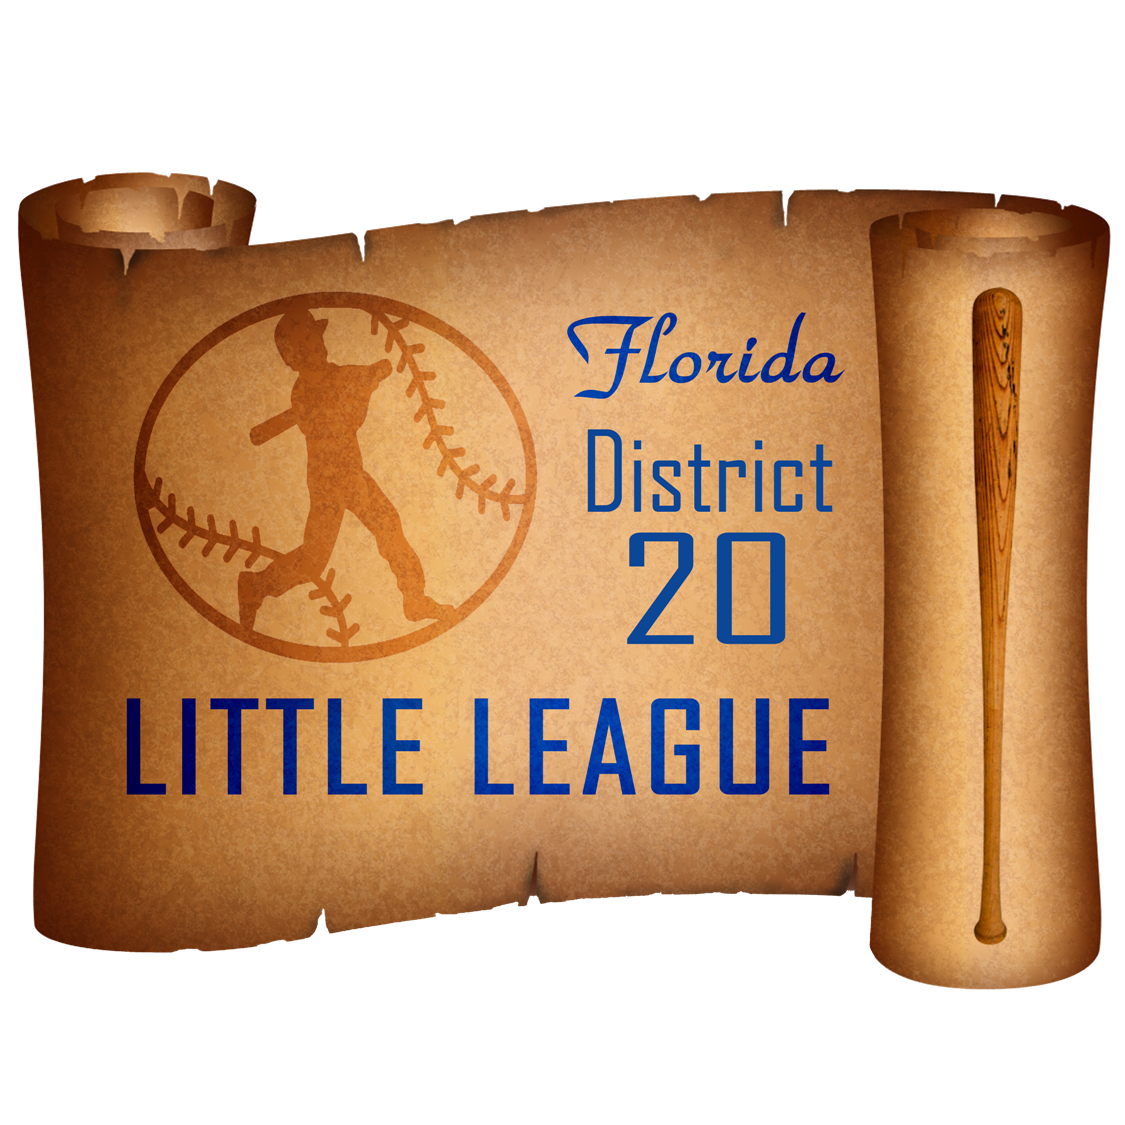 District 20 Little League